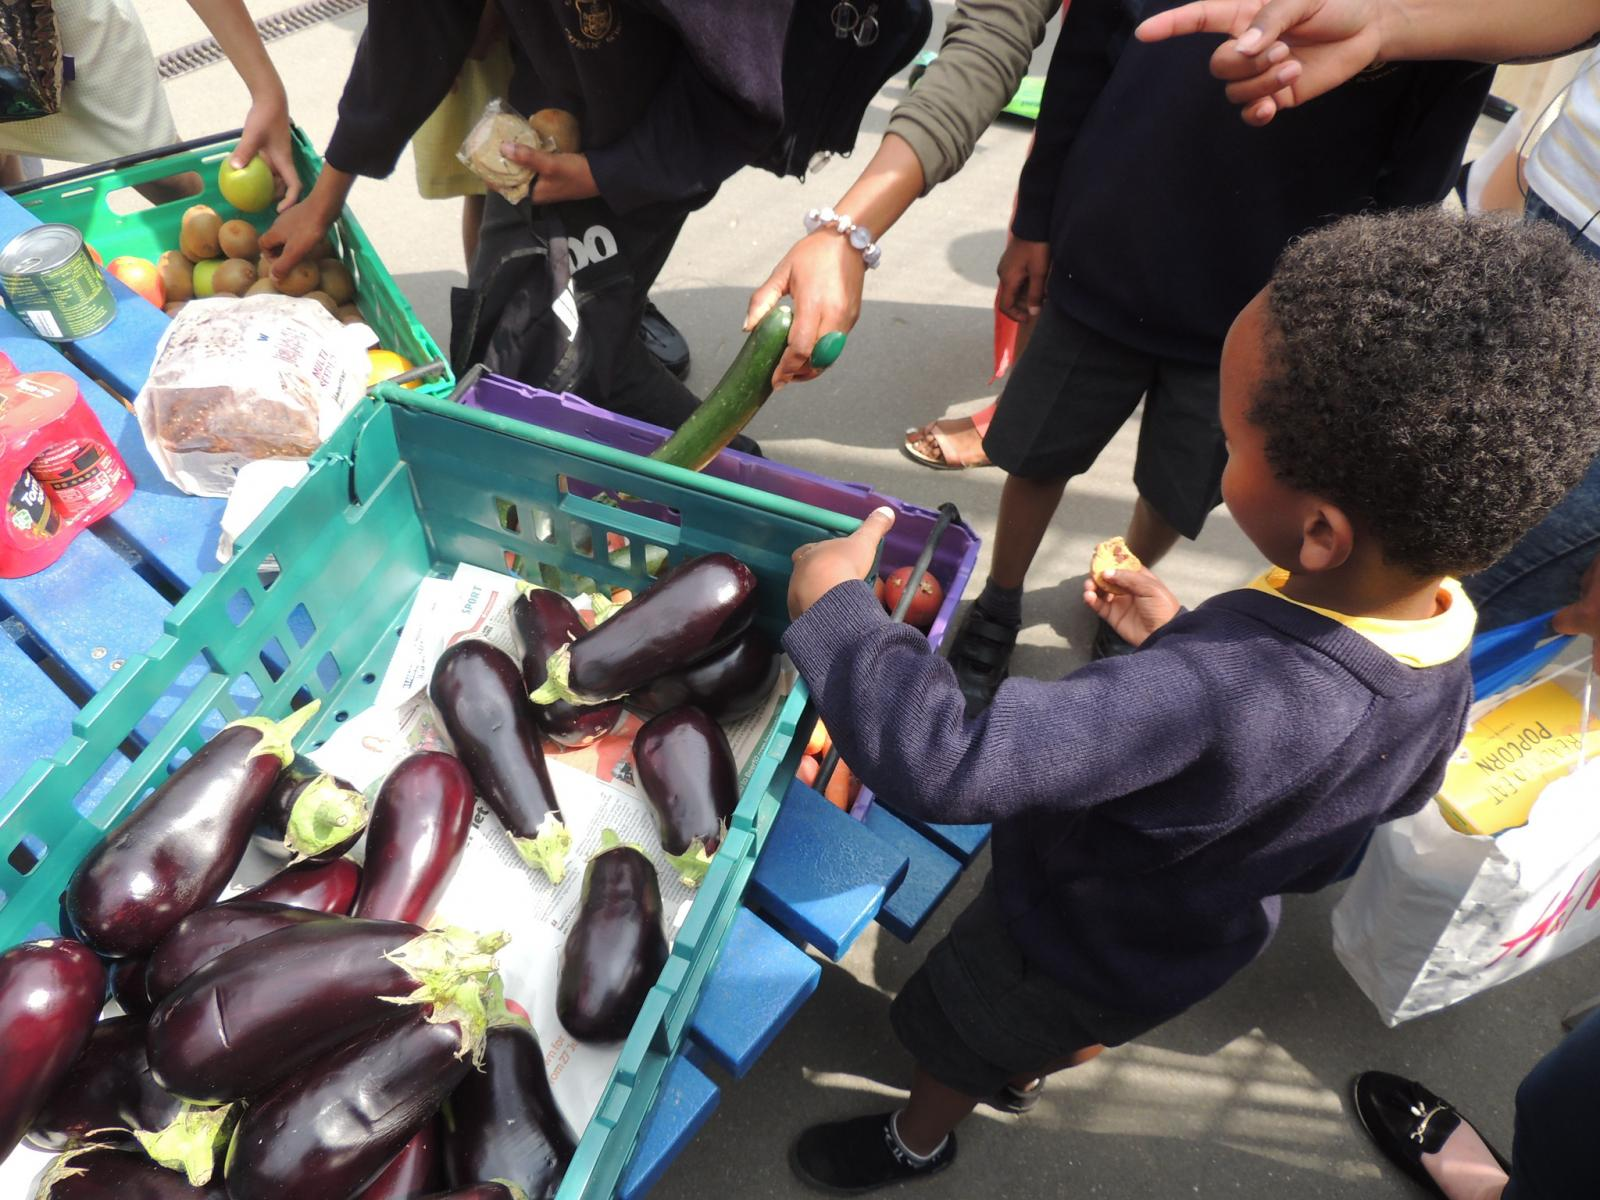 'Every child deserves access to nutritious food' - Diocese of Westminster